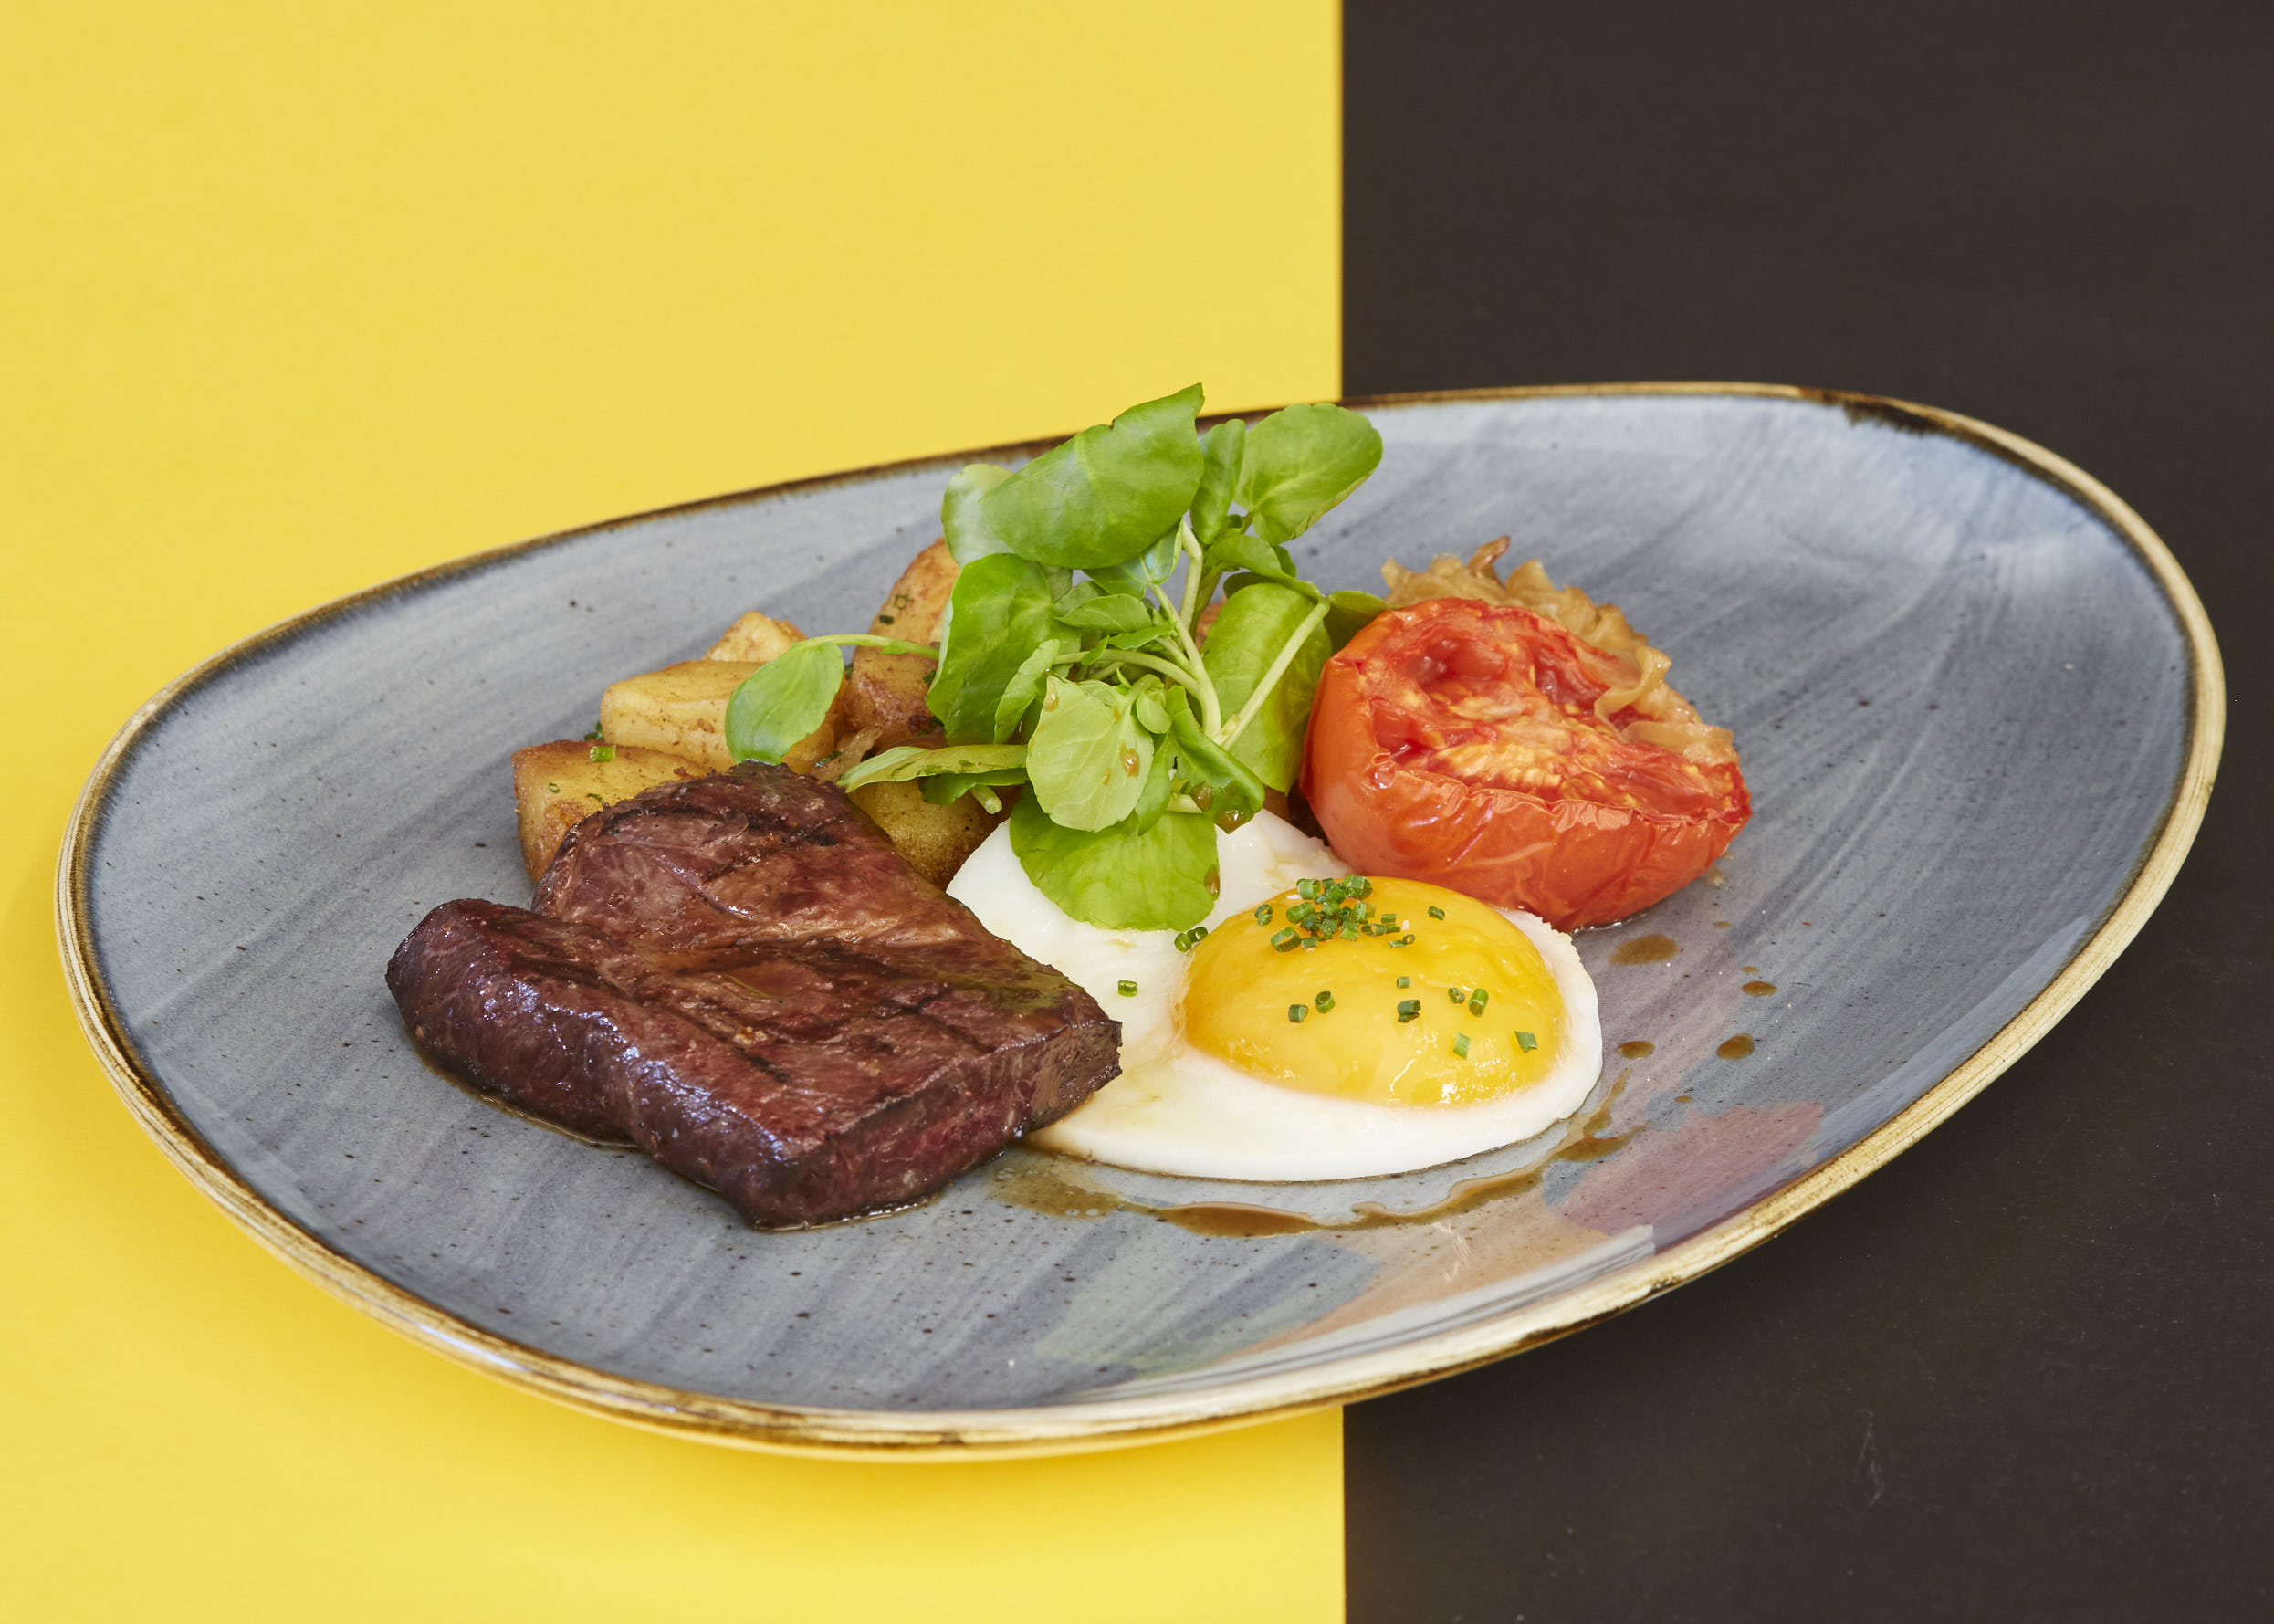 2020_02_12_Tate_Modern_Warhol_Brunch_egg_steak_45881